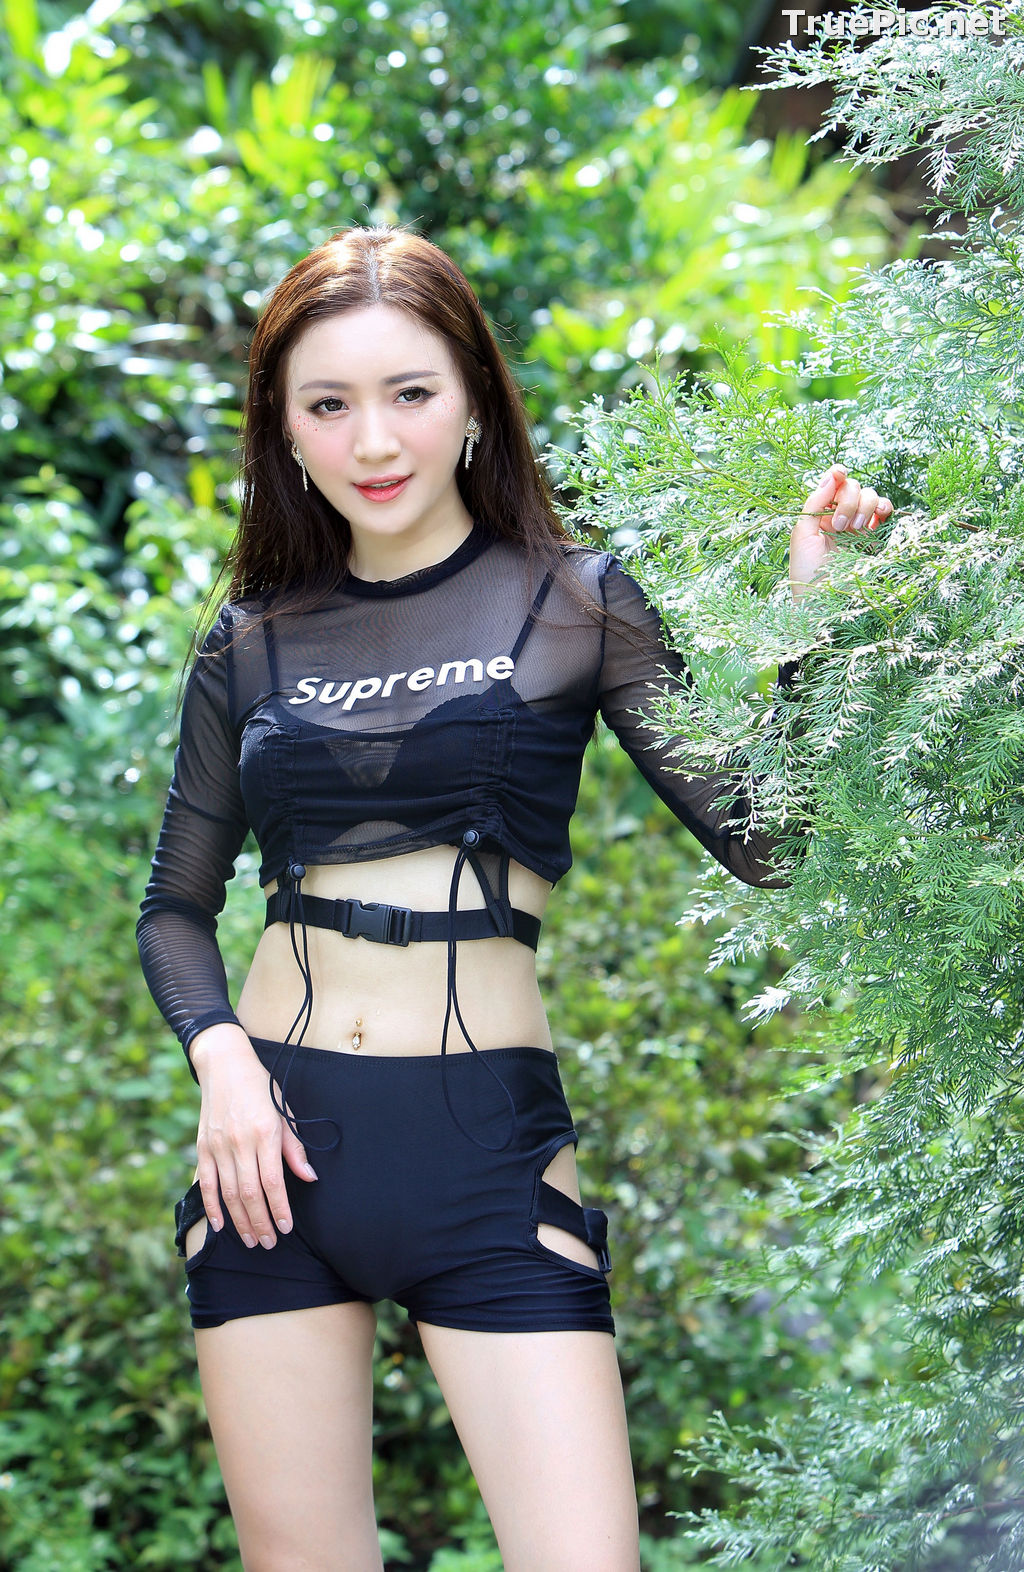 Image Taiwanese Model - 乖寶 - Pretty and Vivid Showgirl - TruePic.net - Picture-24